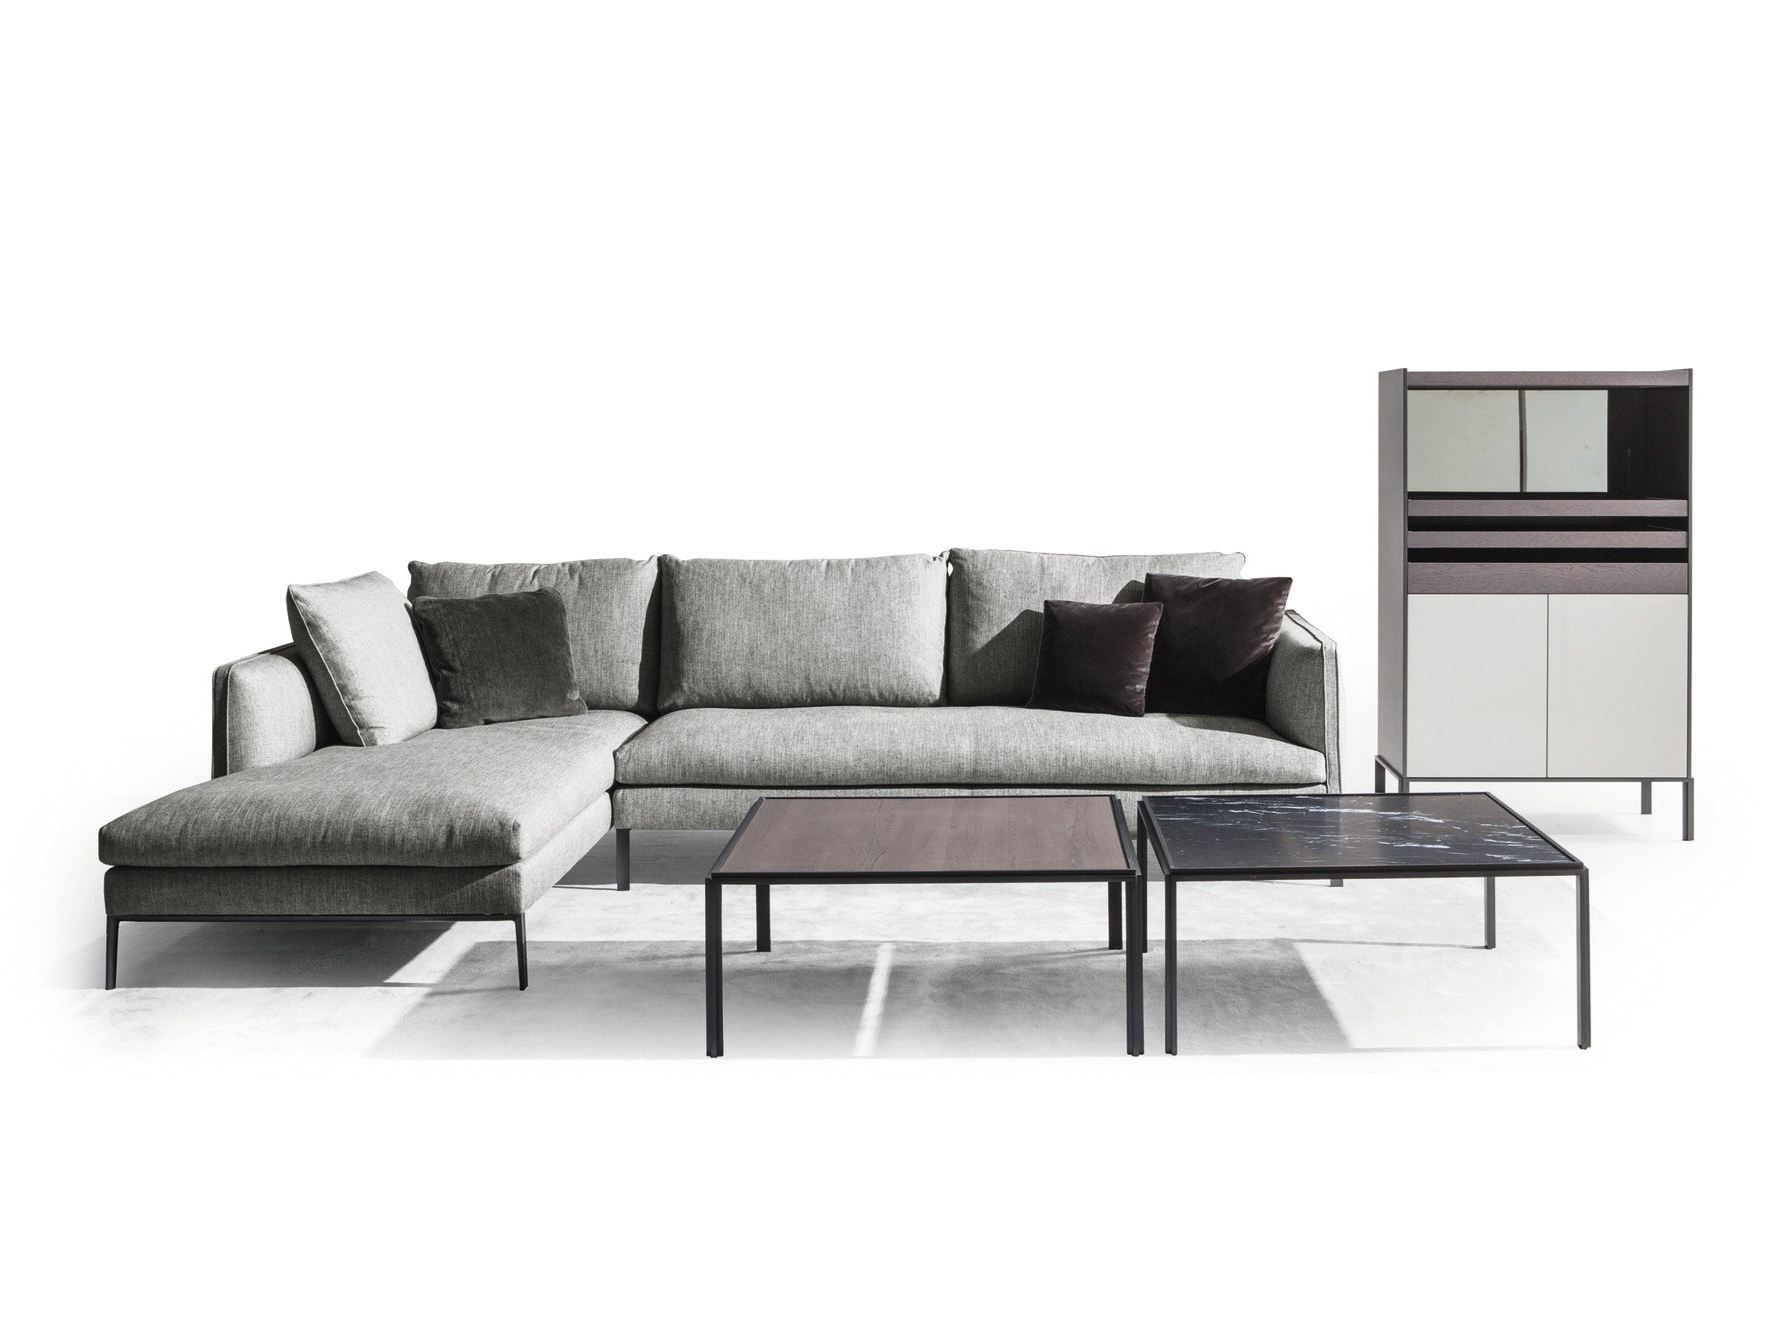 Divano Albert Molteni Paul Sofa With Chaise Longue By Molteni C Design Vincent Van